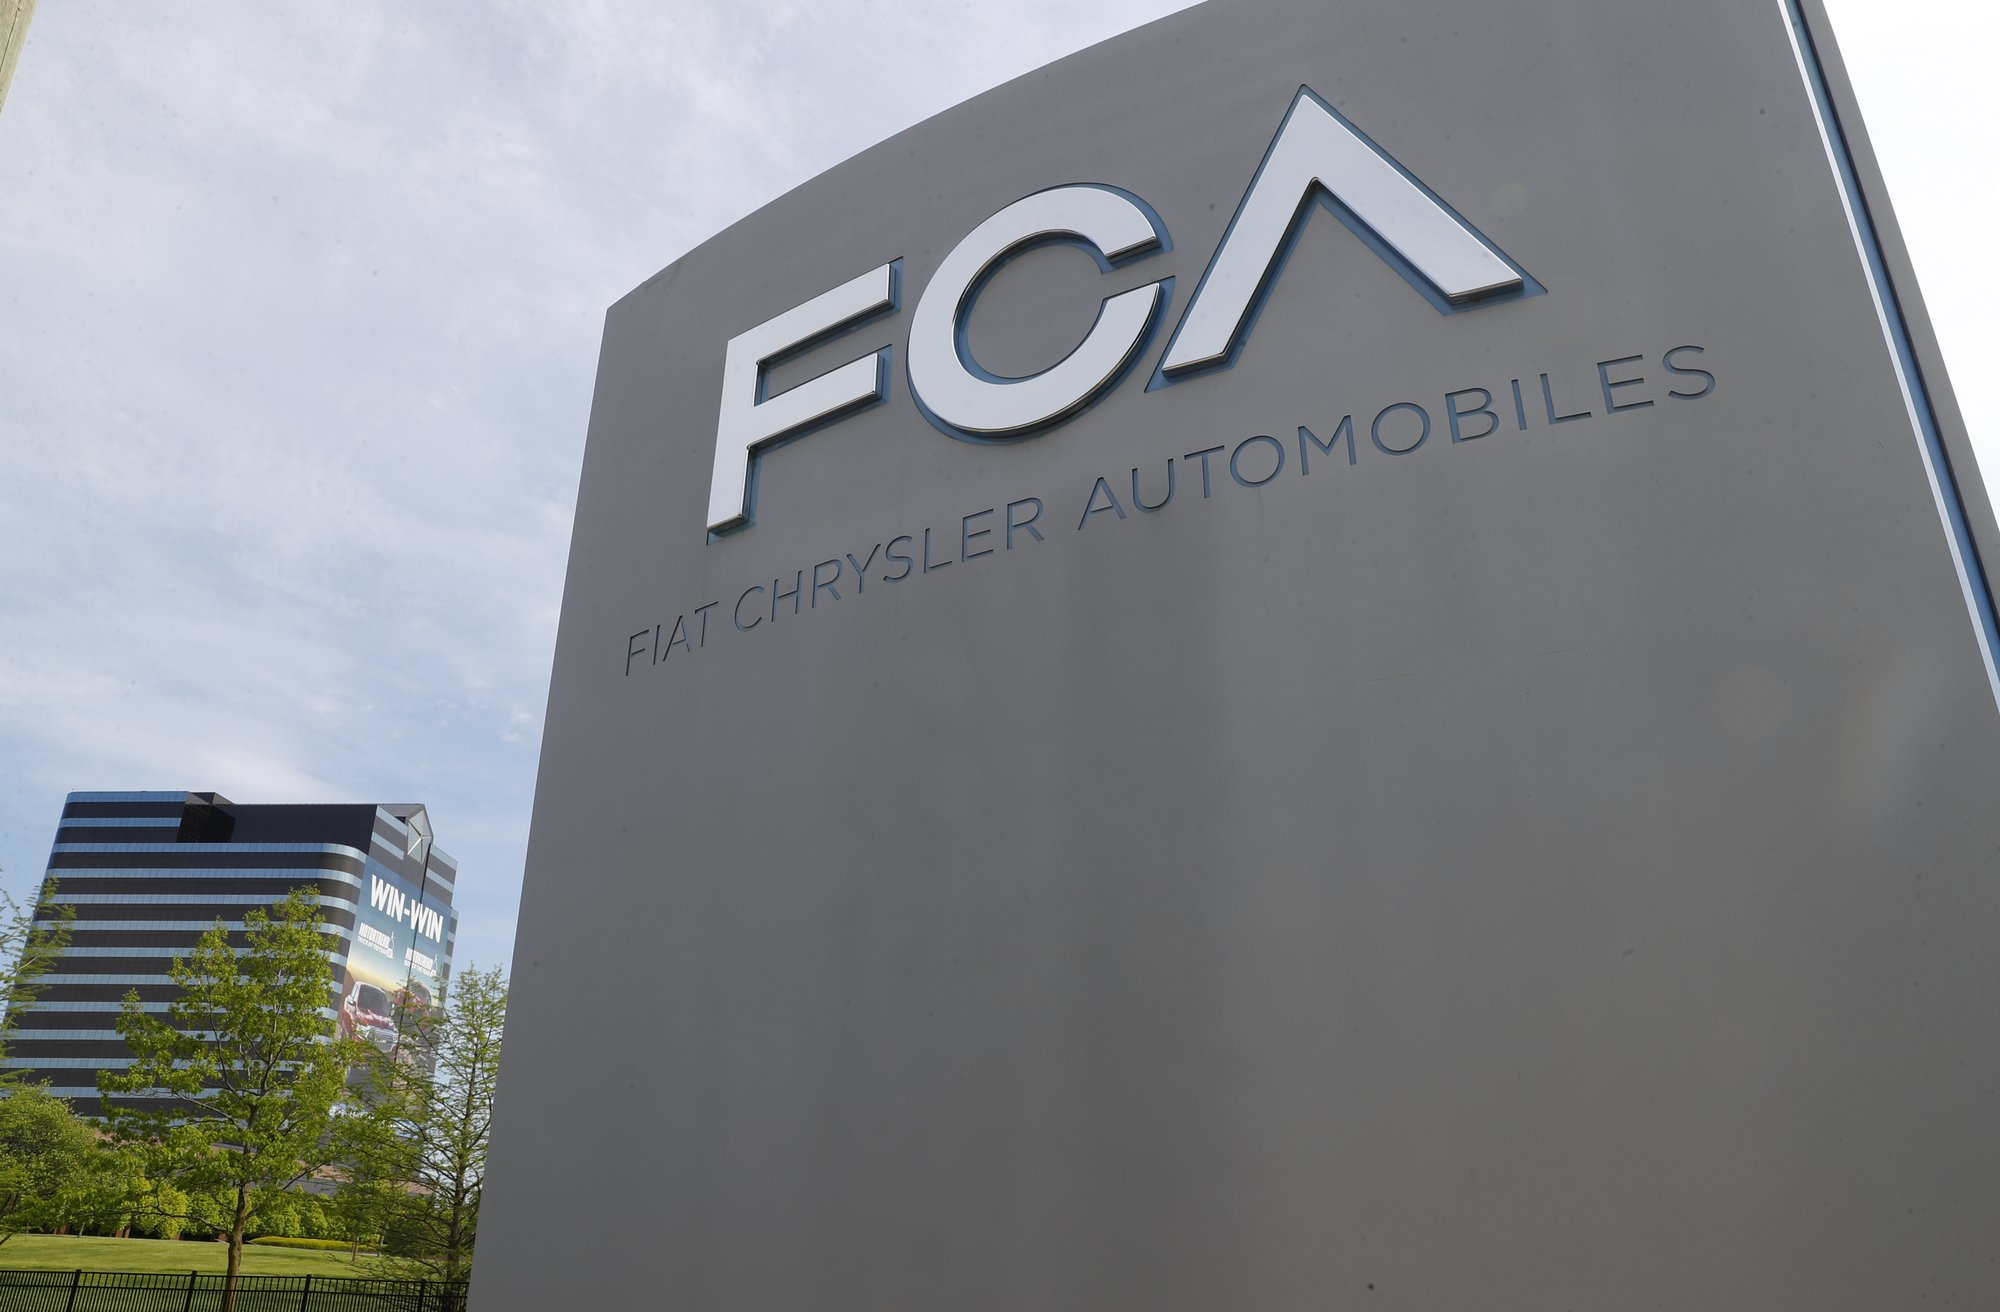 France: No jobs must be lost in Renault-Fiat Chrysler tie-up